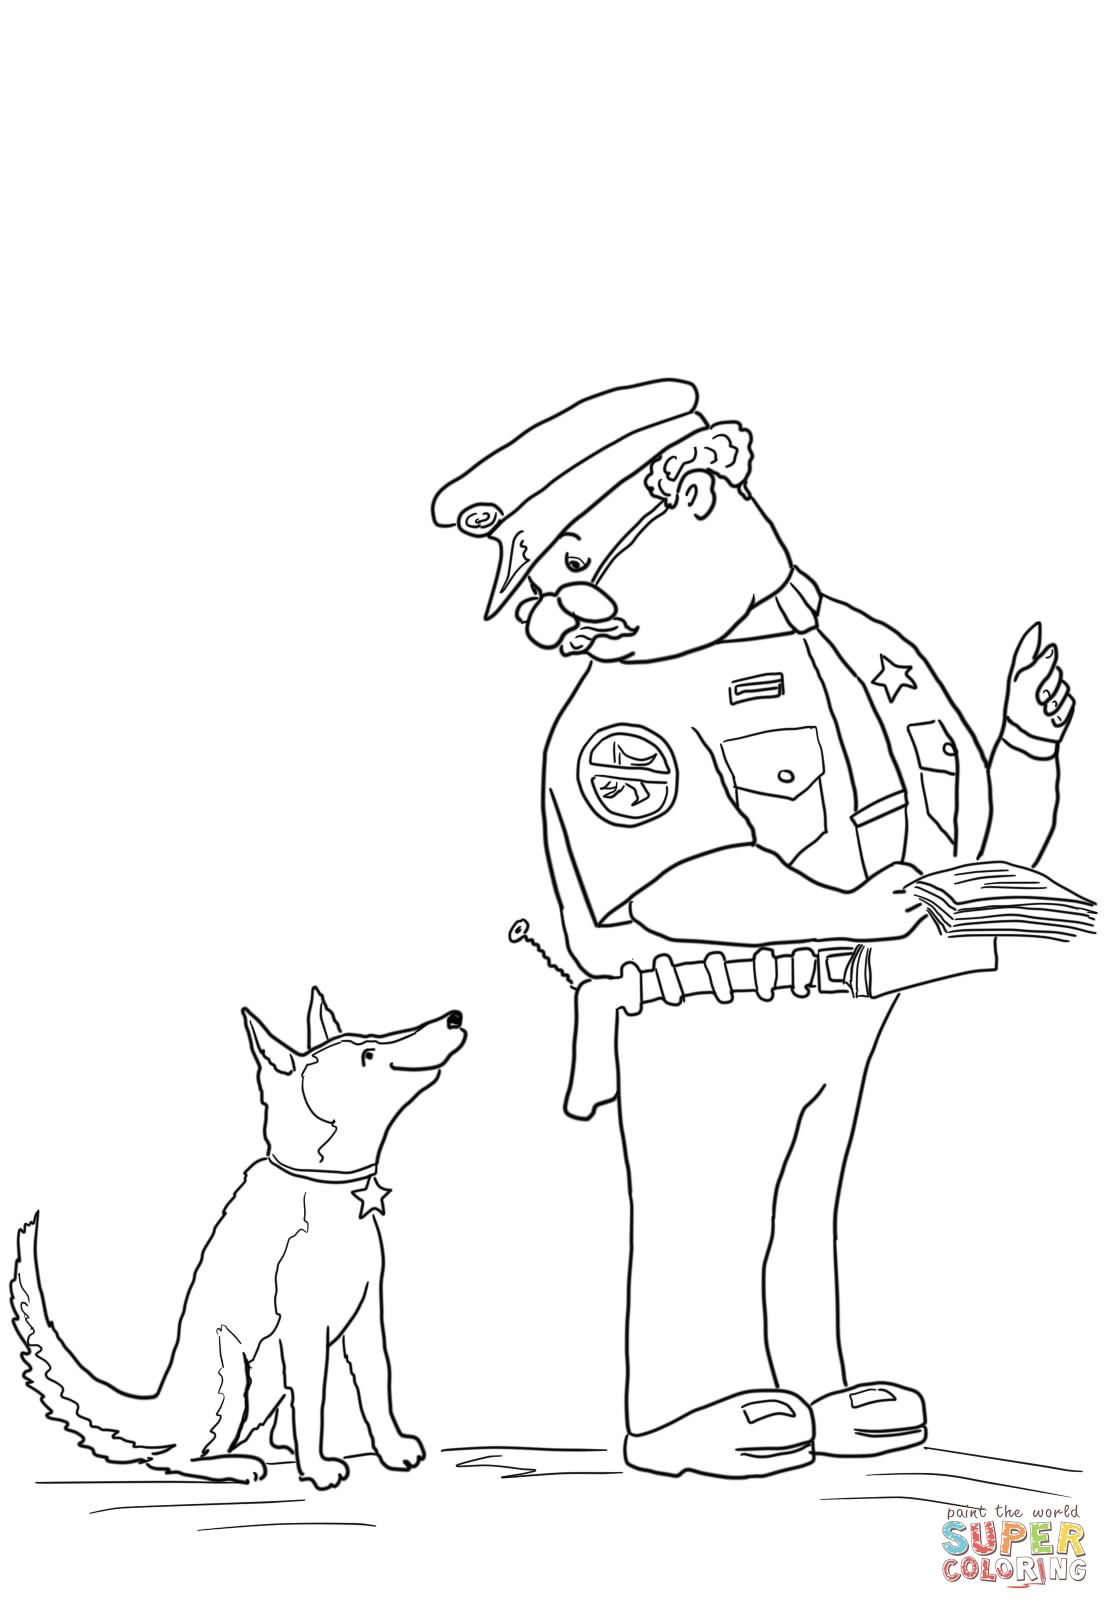 officer buckle and gloria coloring pages officer buckle and gloria taking a bow coloring page gloria officer and pages coloring buckle